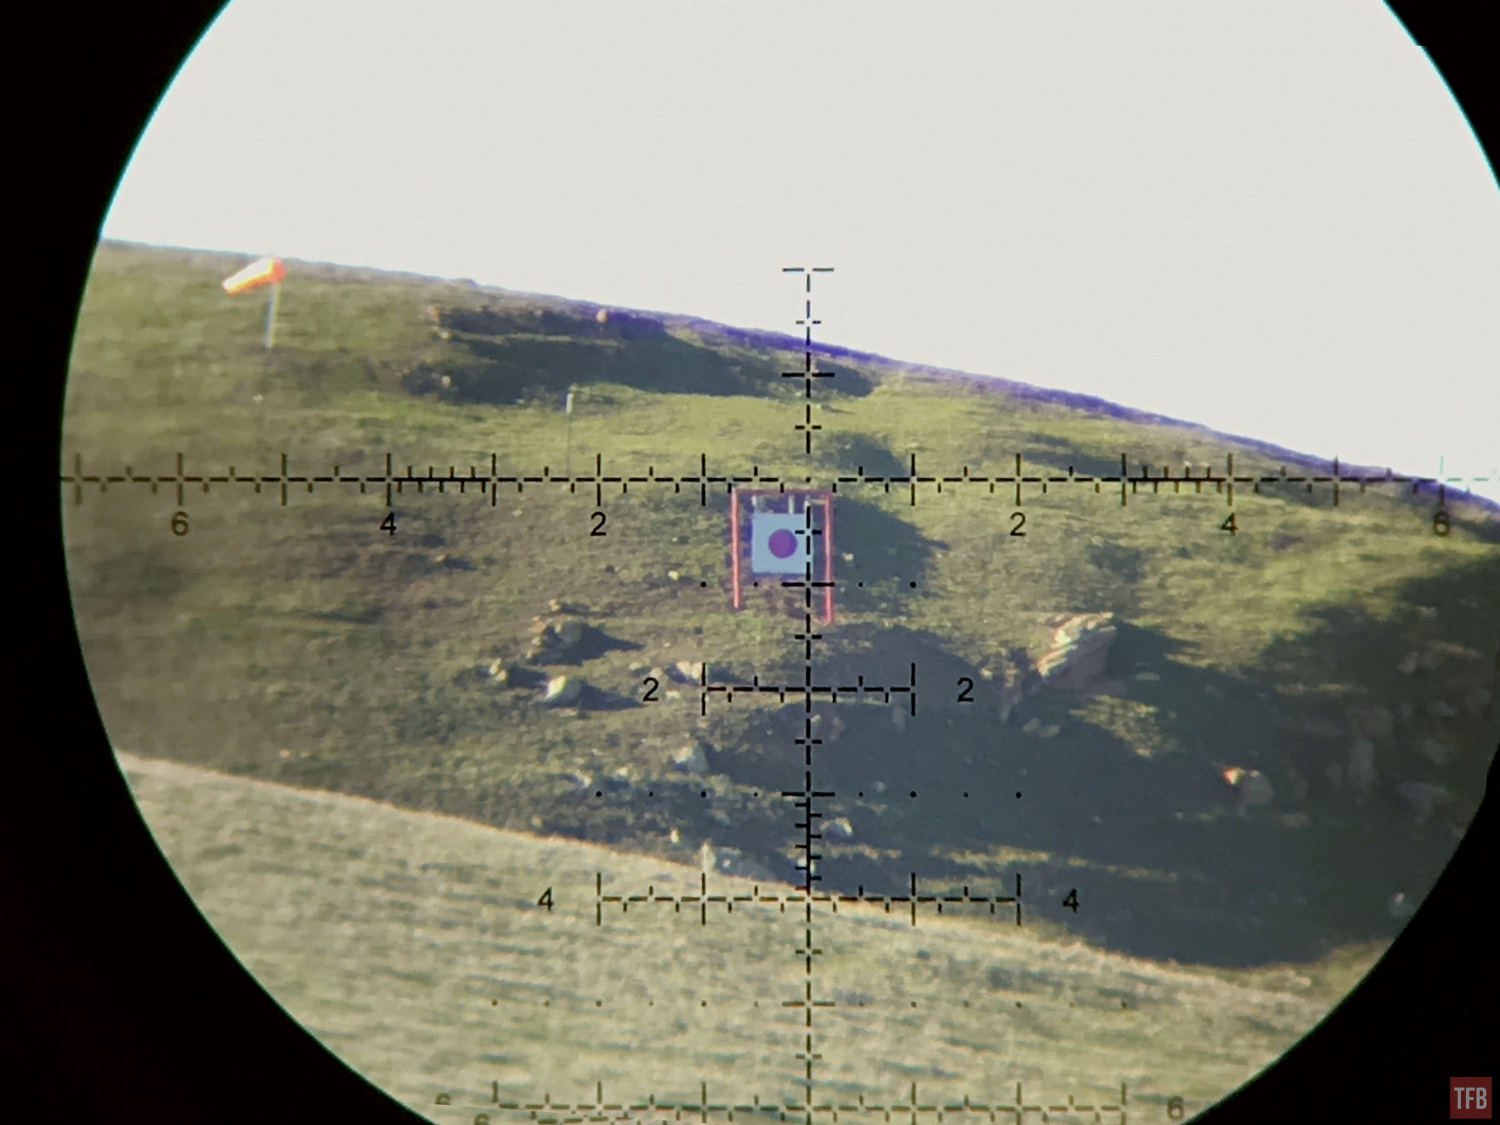 PR2 reticle looking at a mile target